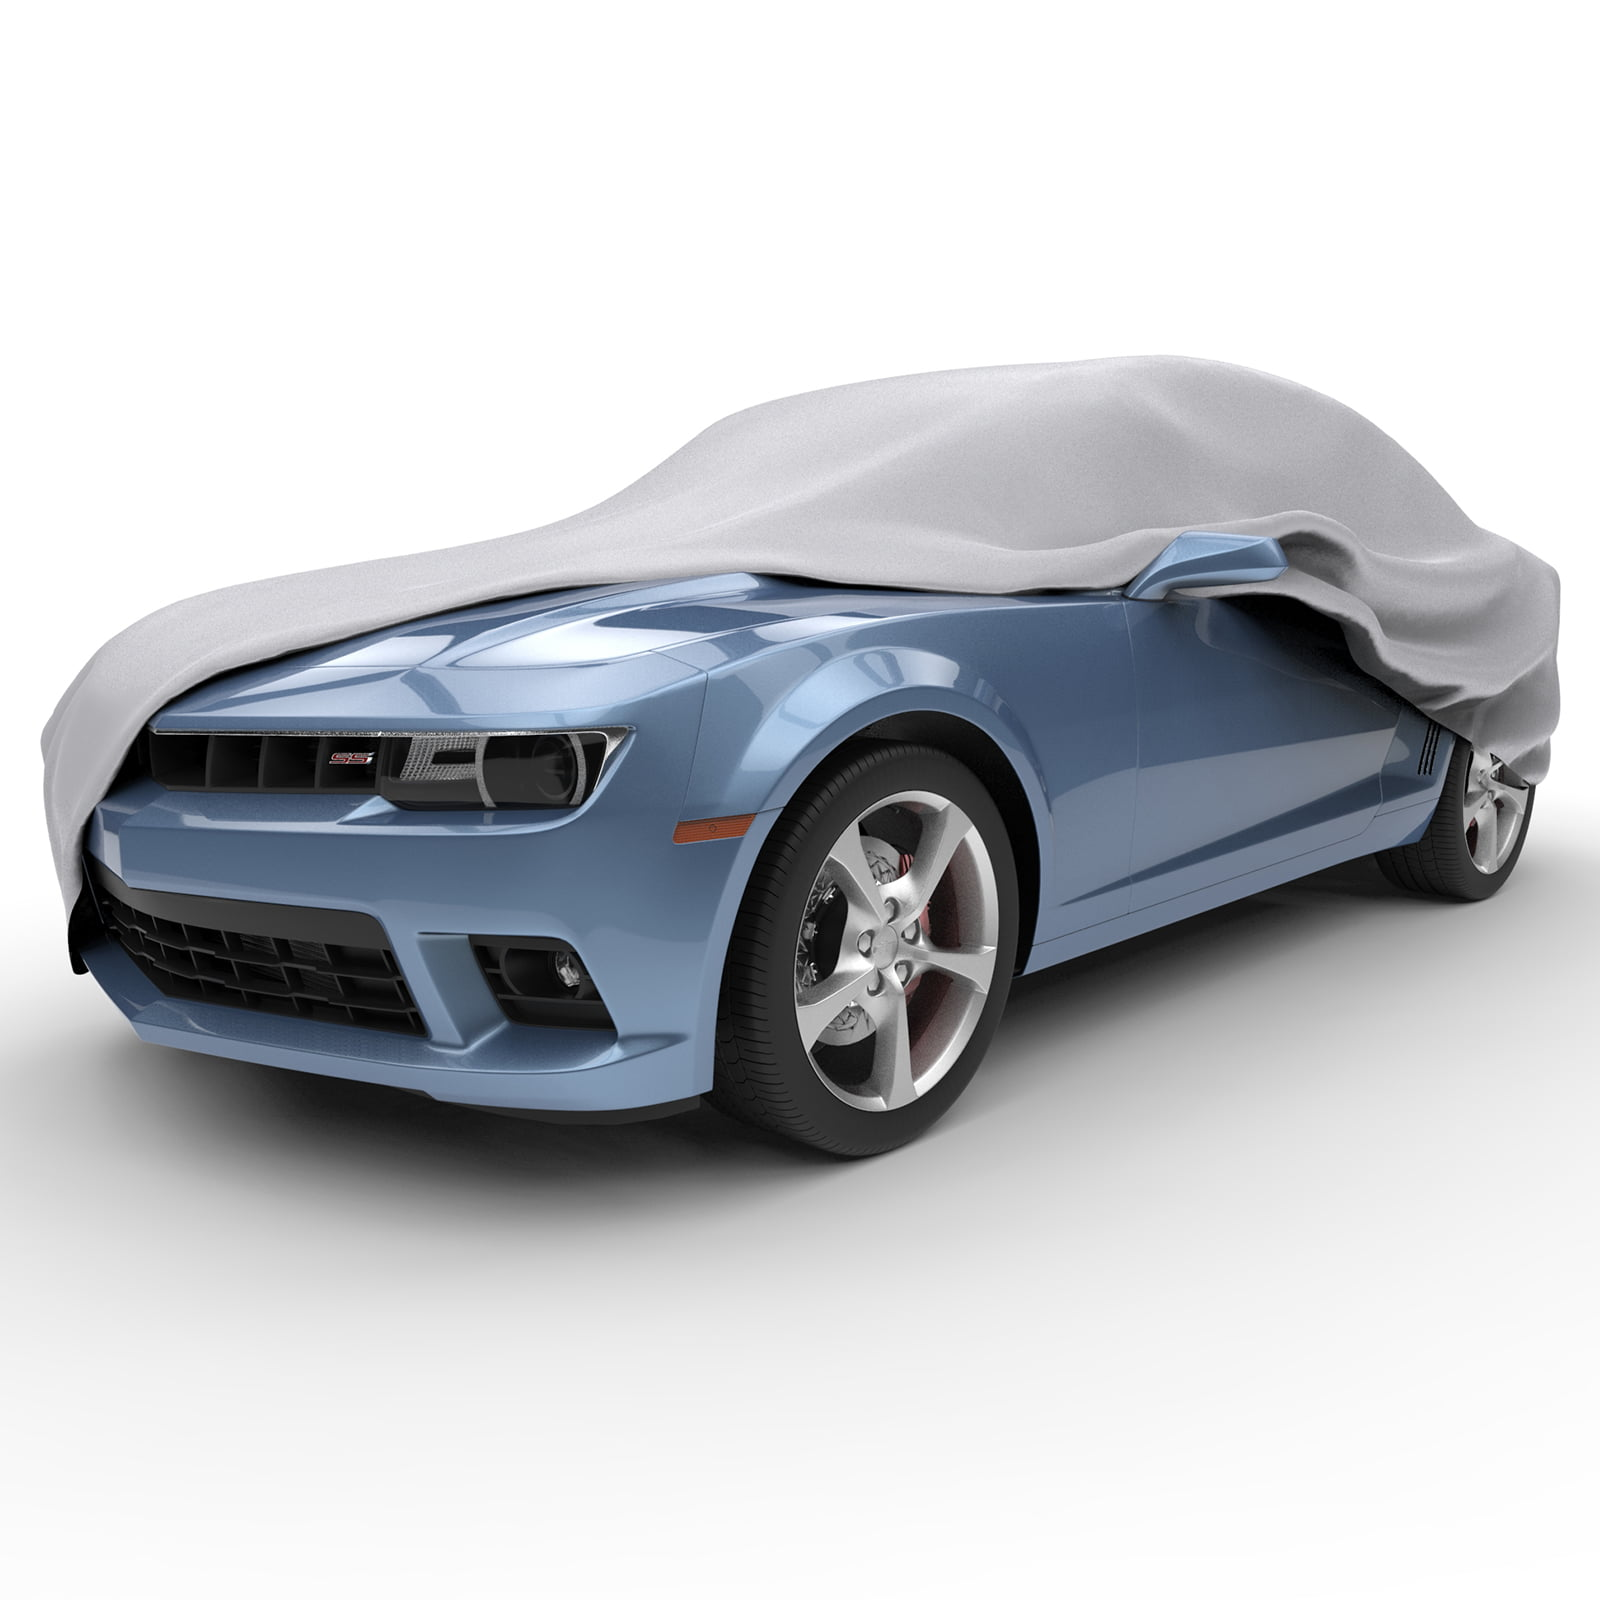 Budge Rain Barrier Car Cover, Rain and UV Protection for Cars, Multiple Sizes